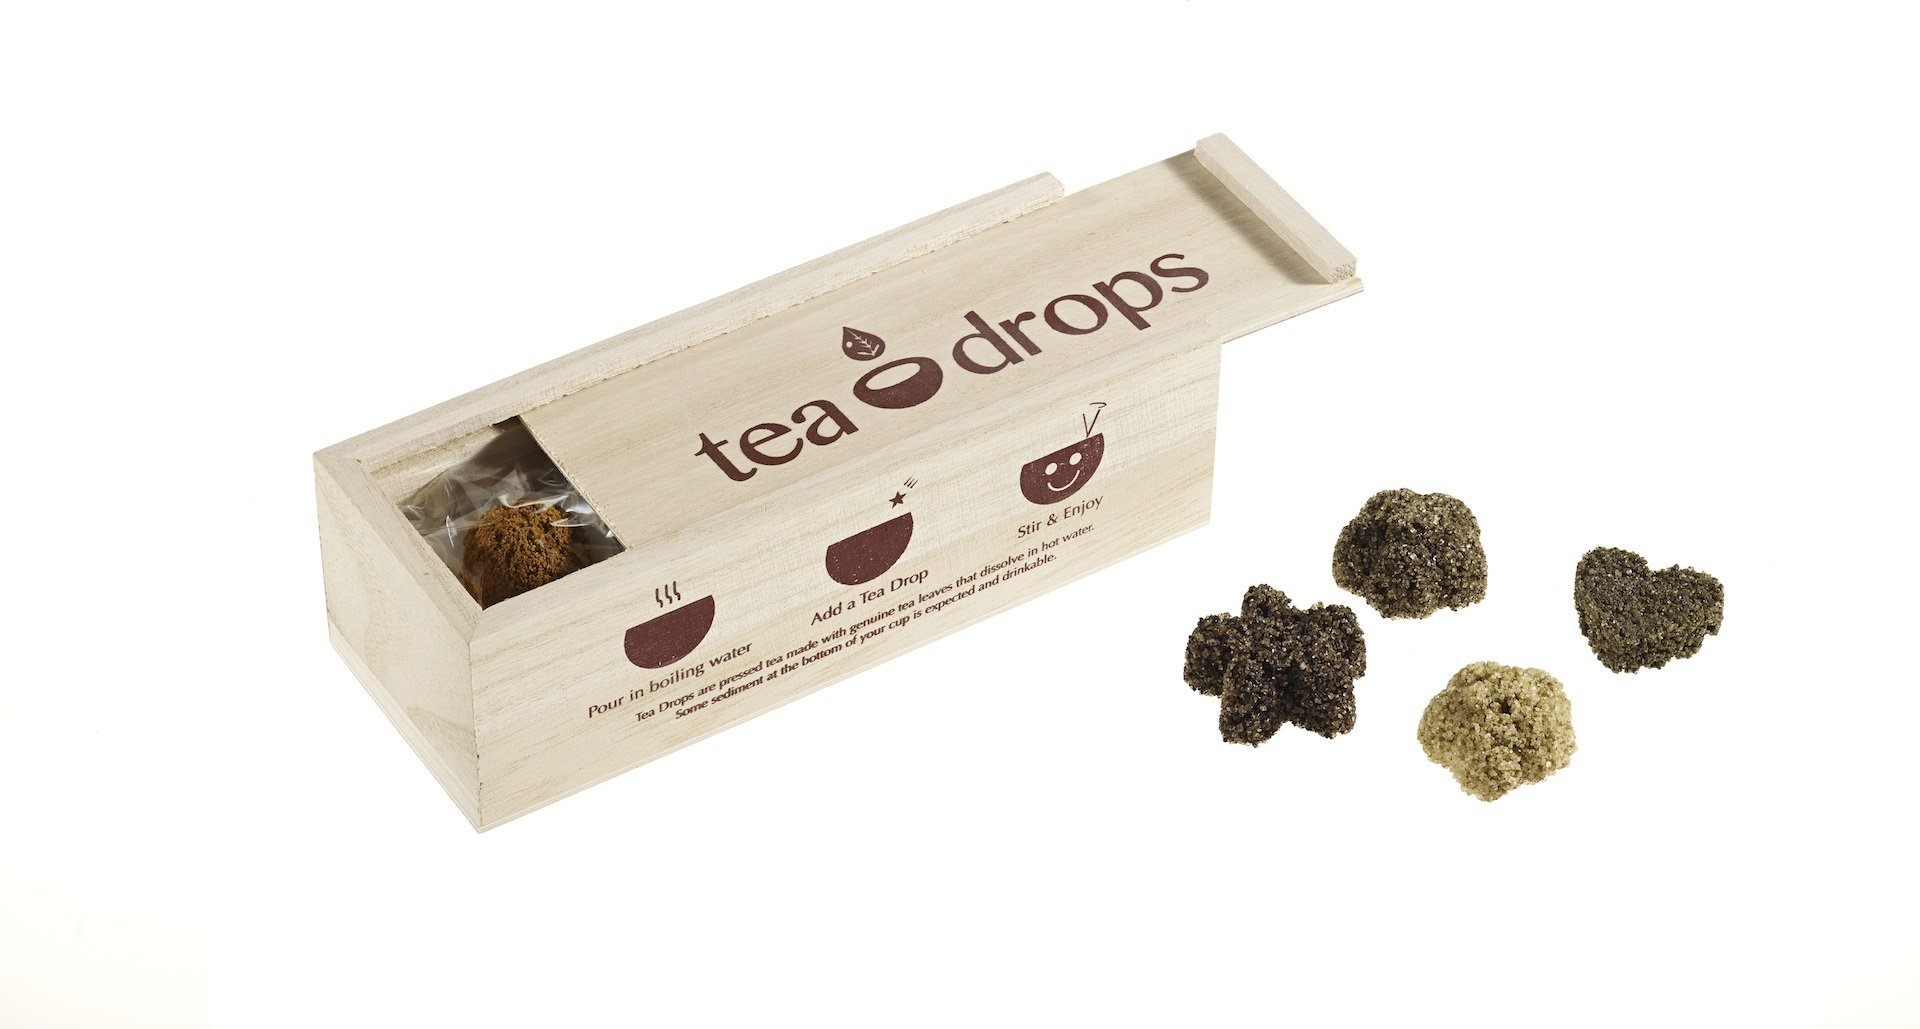 Tea Drops for tea lover gifts